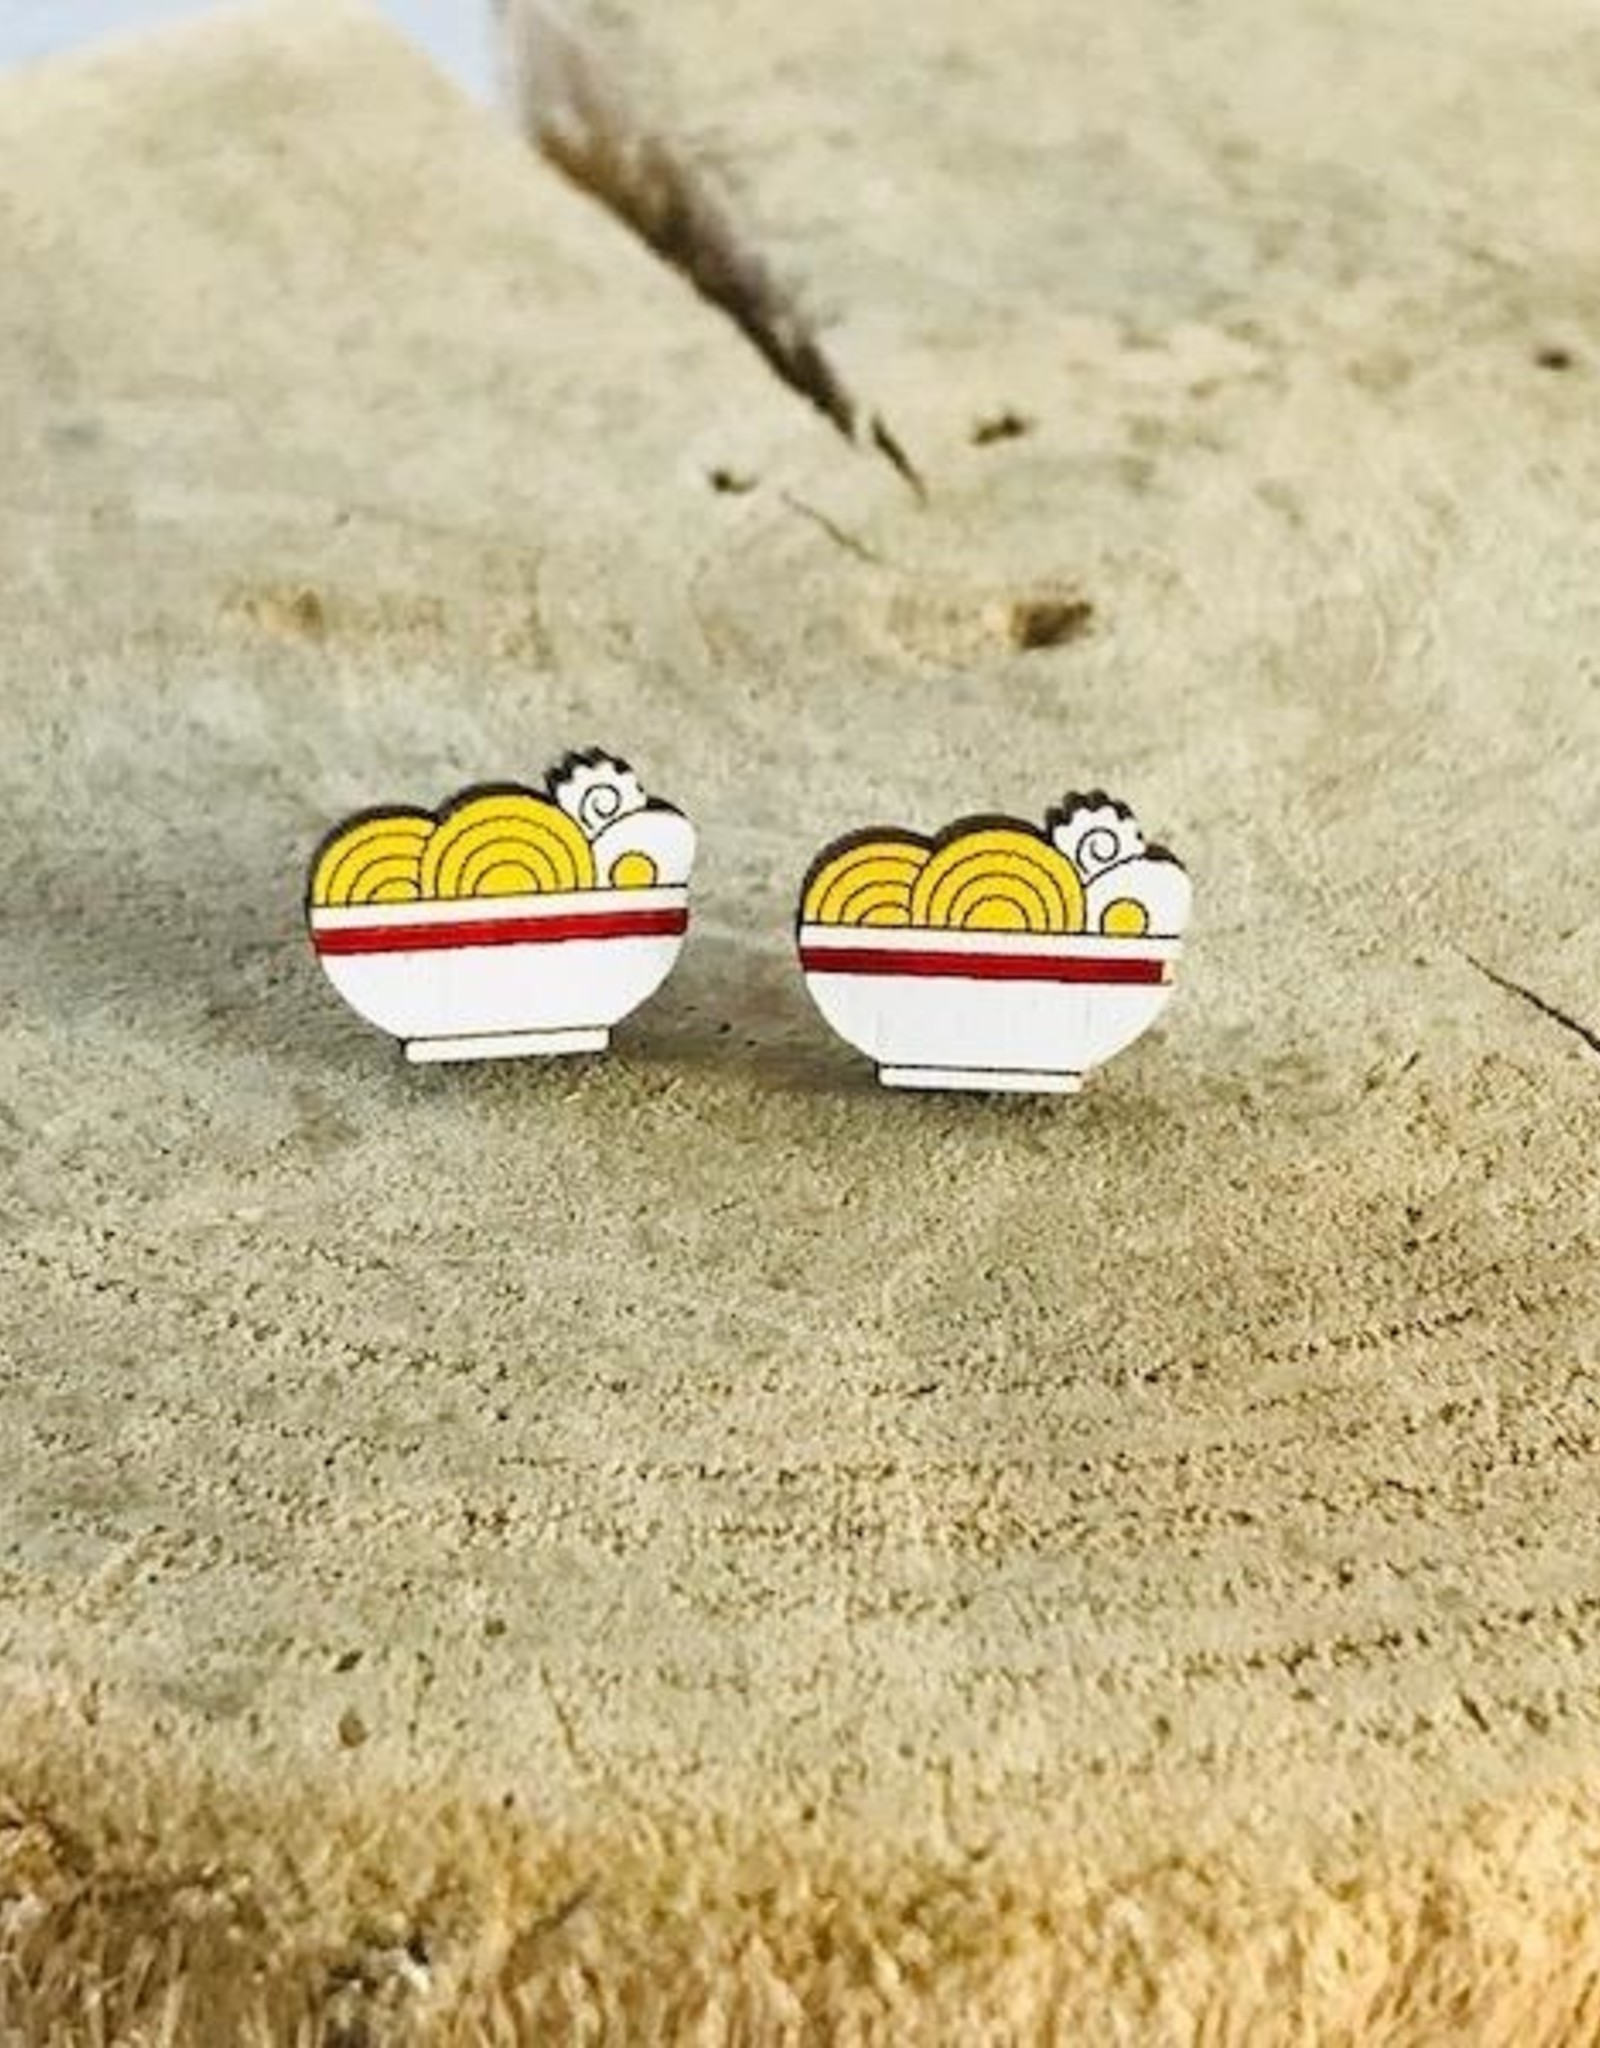 Handmade Ramen Lasercut Wood Earrings on Sterling Silver Posts